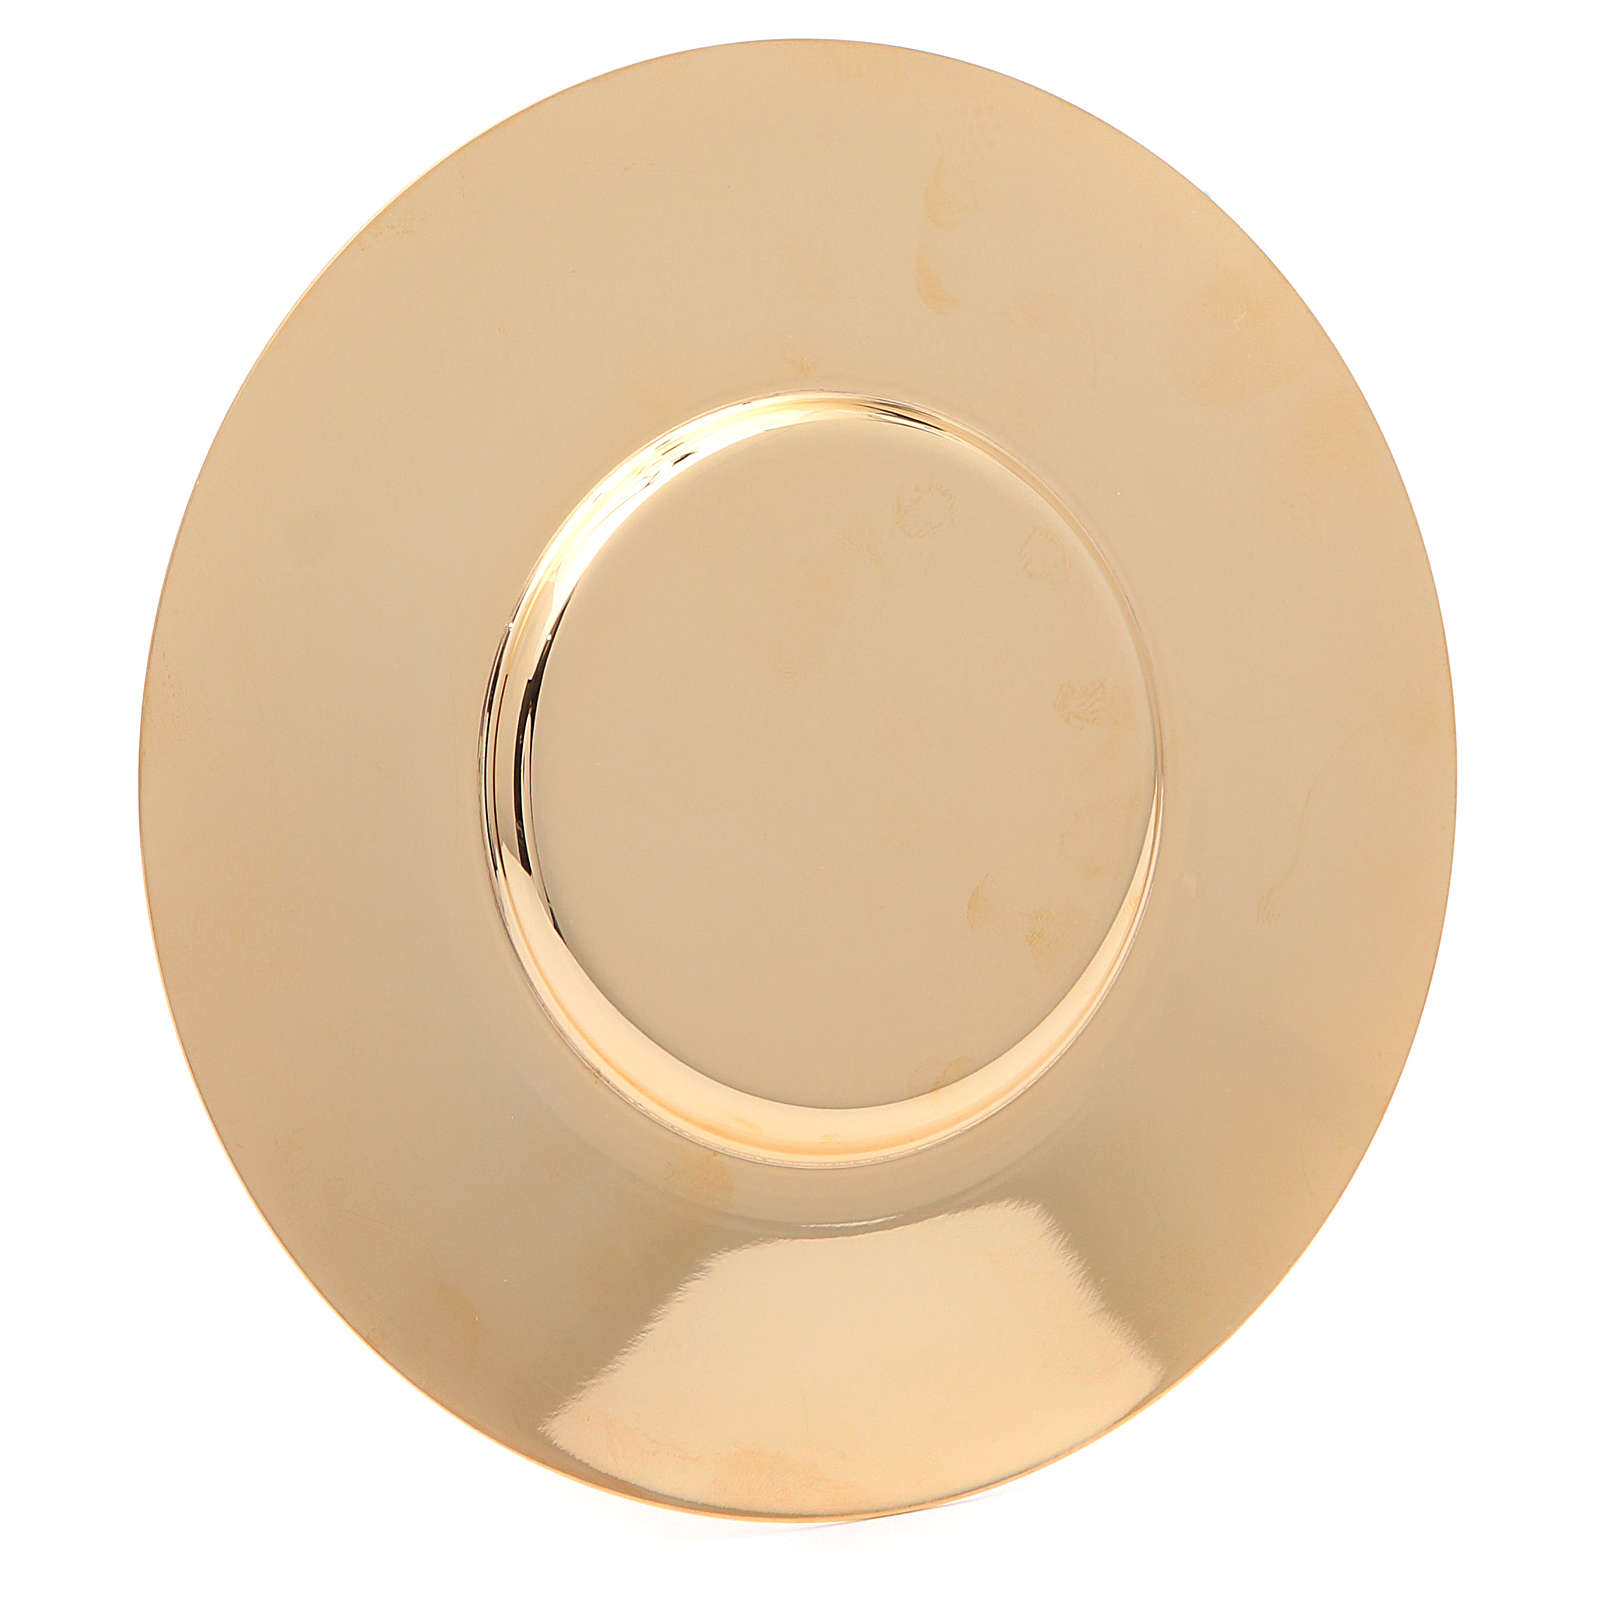 Well paten, polished gold-plated brass, 16 cm 4